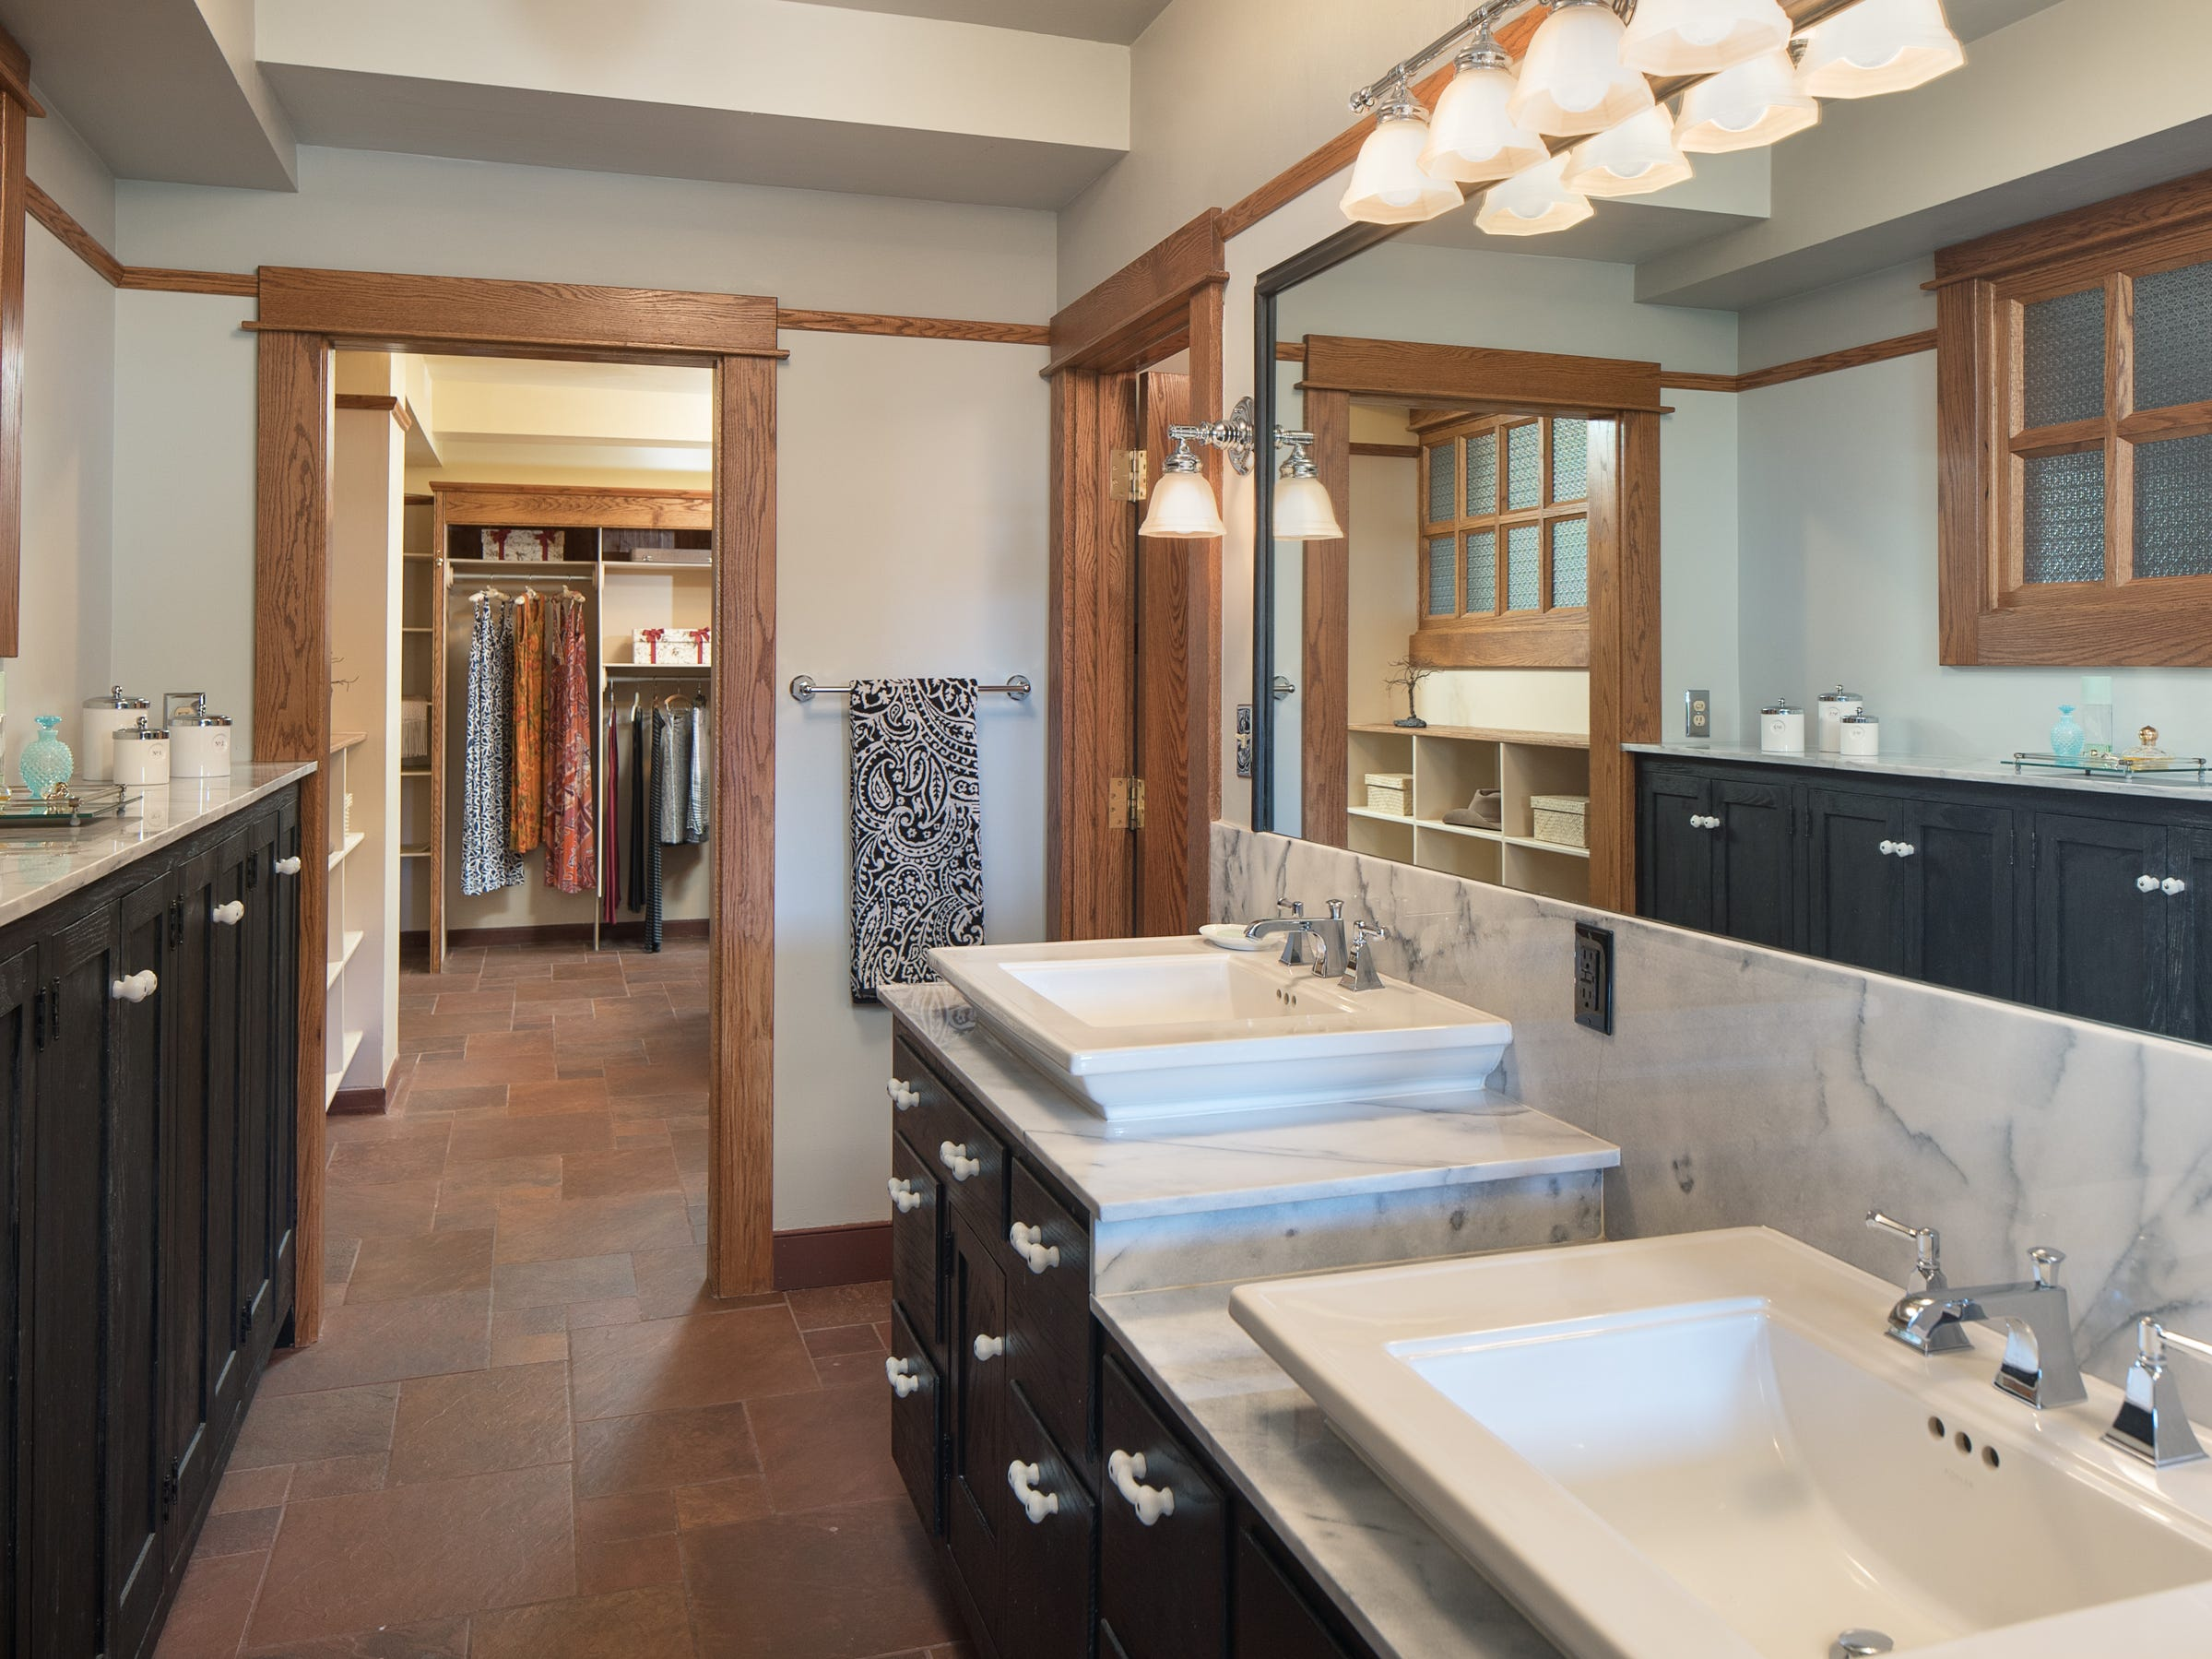 Sinks in a master bathoroom are seen at the 100-year-old former Little Daisy Hotel in Jerome, which was later turned into a single-family home and is now on the market.